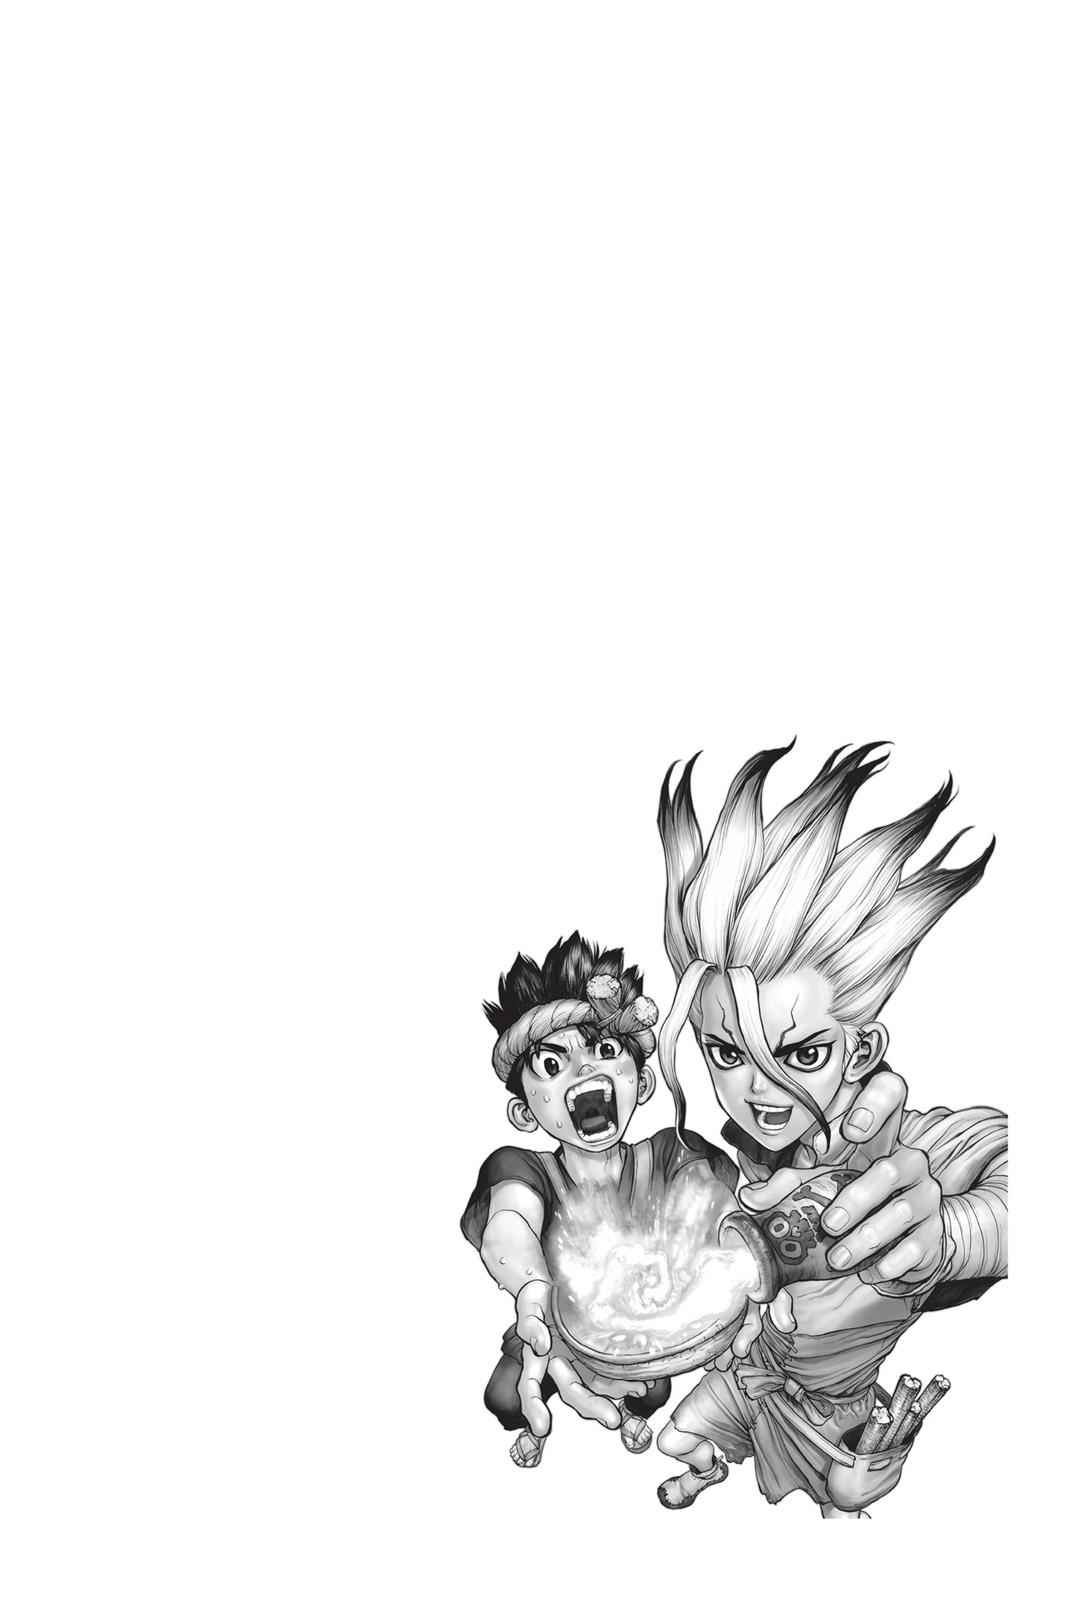 Dr. Stone Chapter 30 Page 20